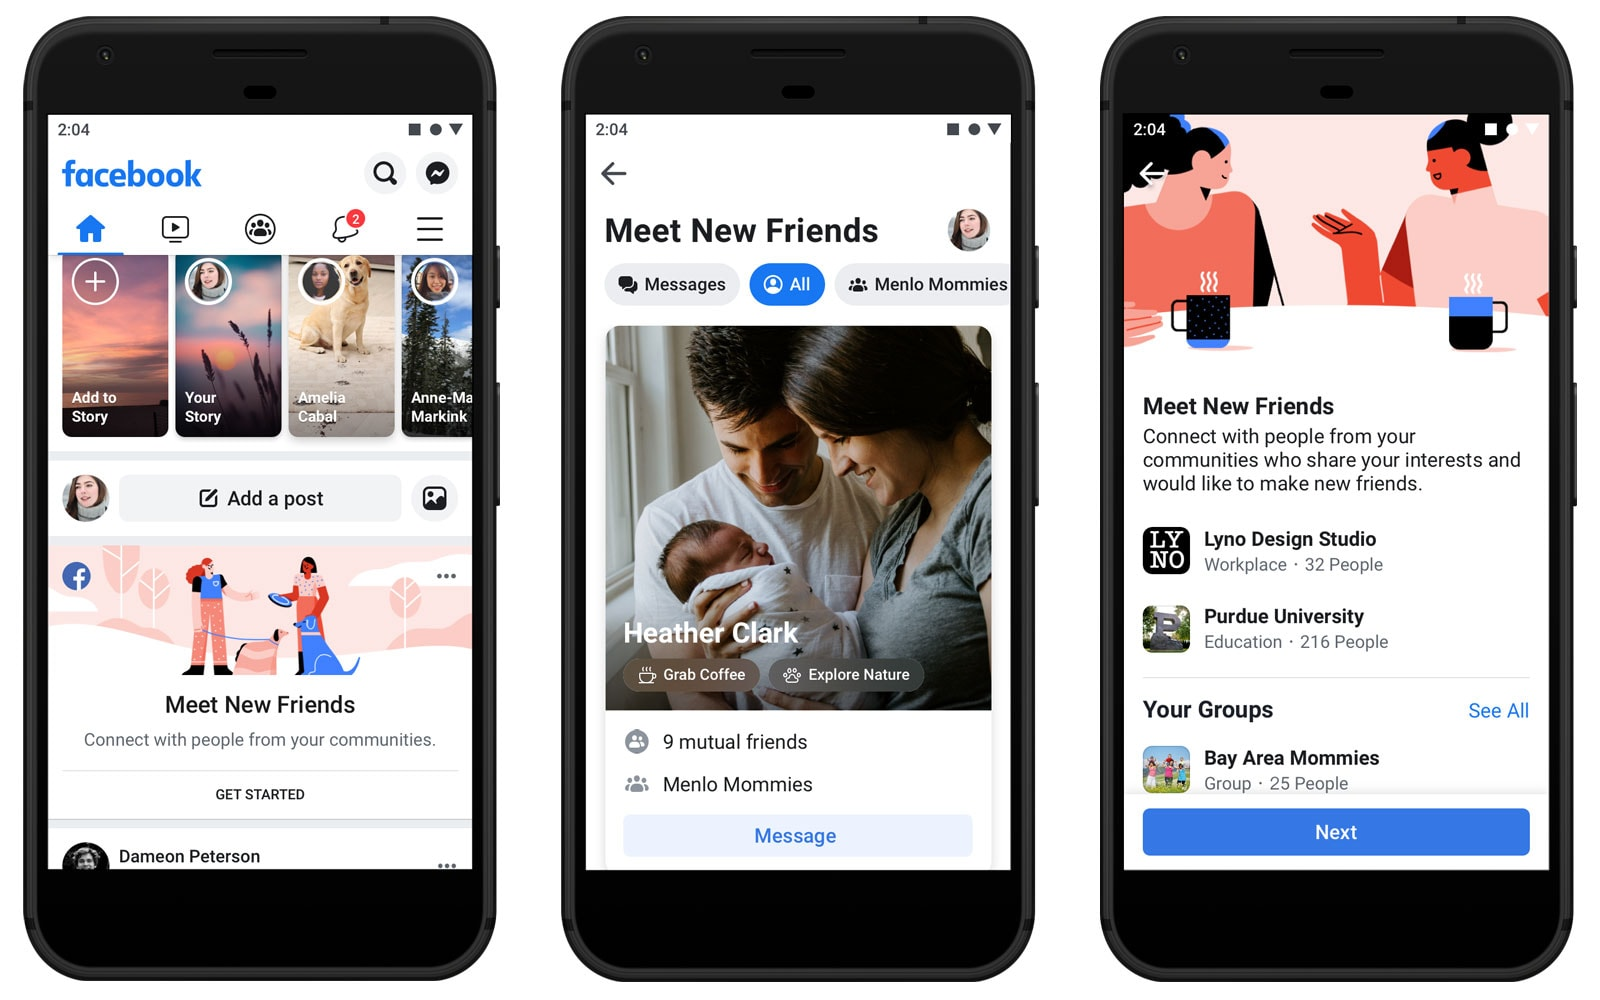 Facebook helps you grow your social circle with 'Meet New